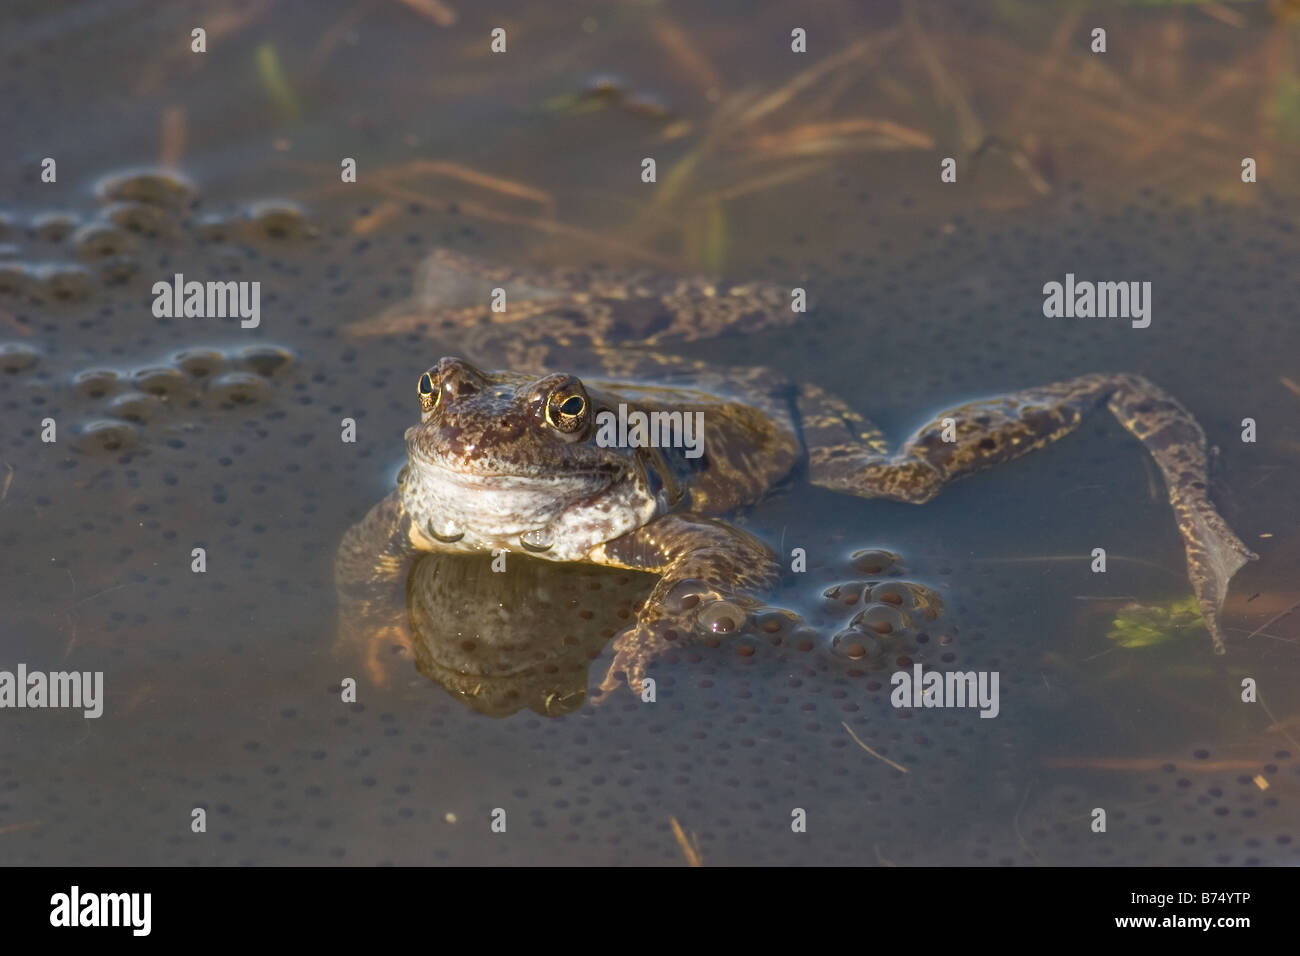 Common Frogs, Rana temporaria with eggs - Stock Image